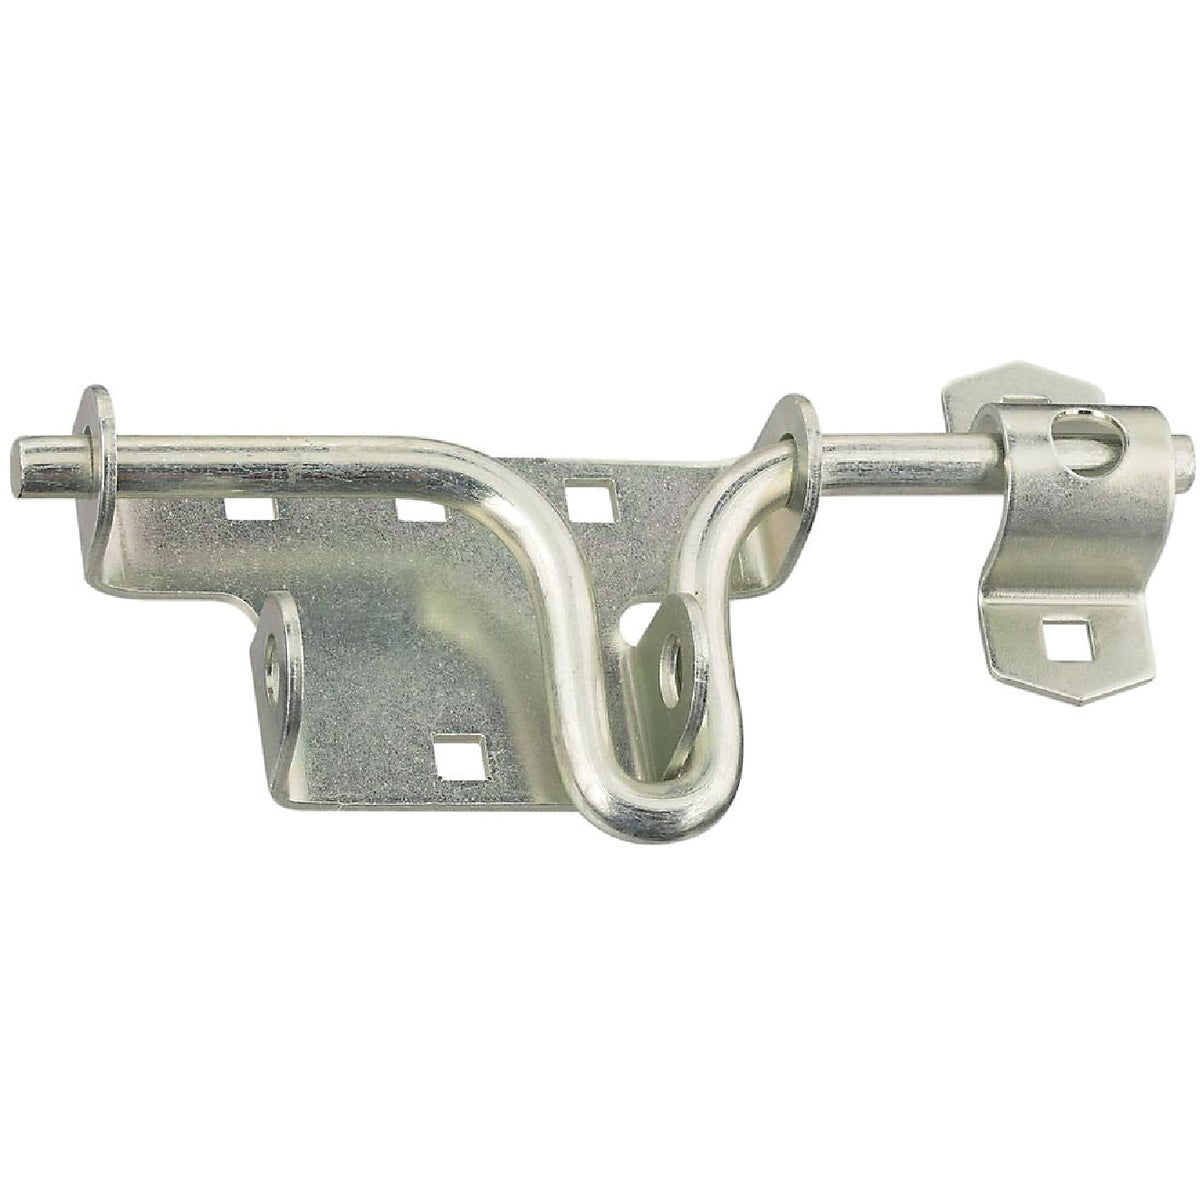 ZINC SLIDE BOLT LATCH - N165555 by National Mfg Co